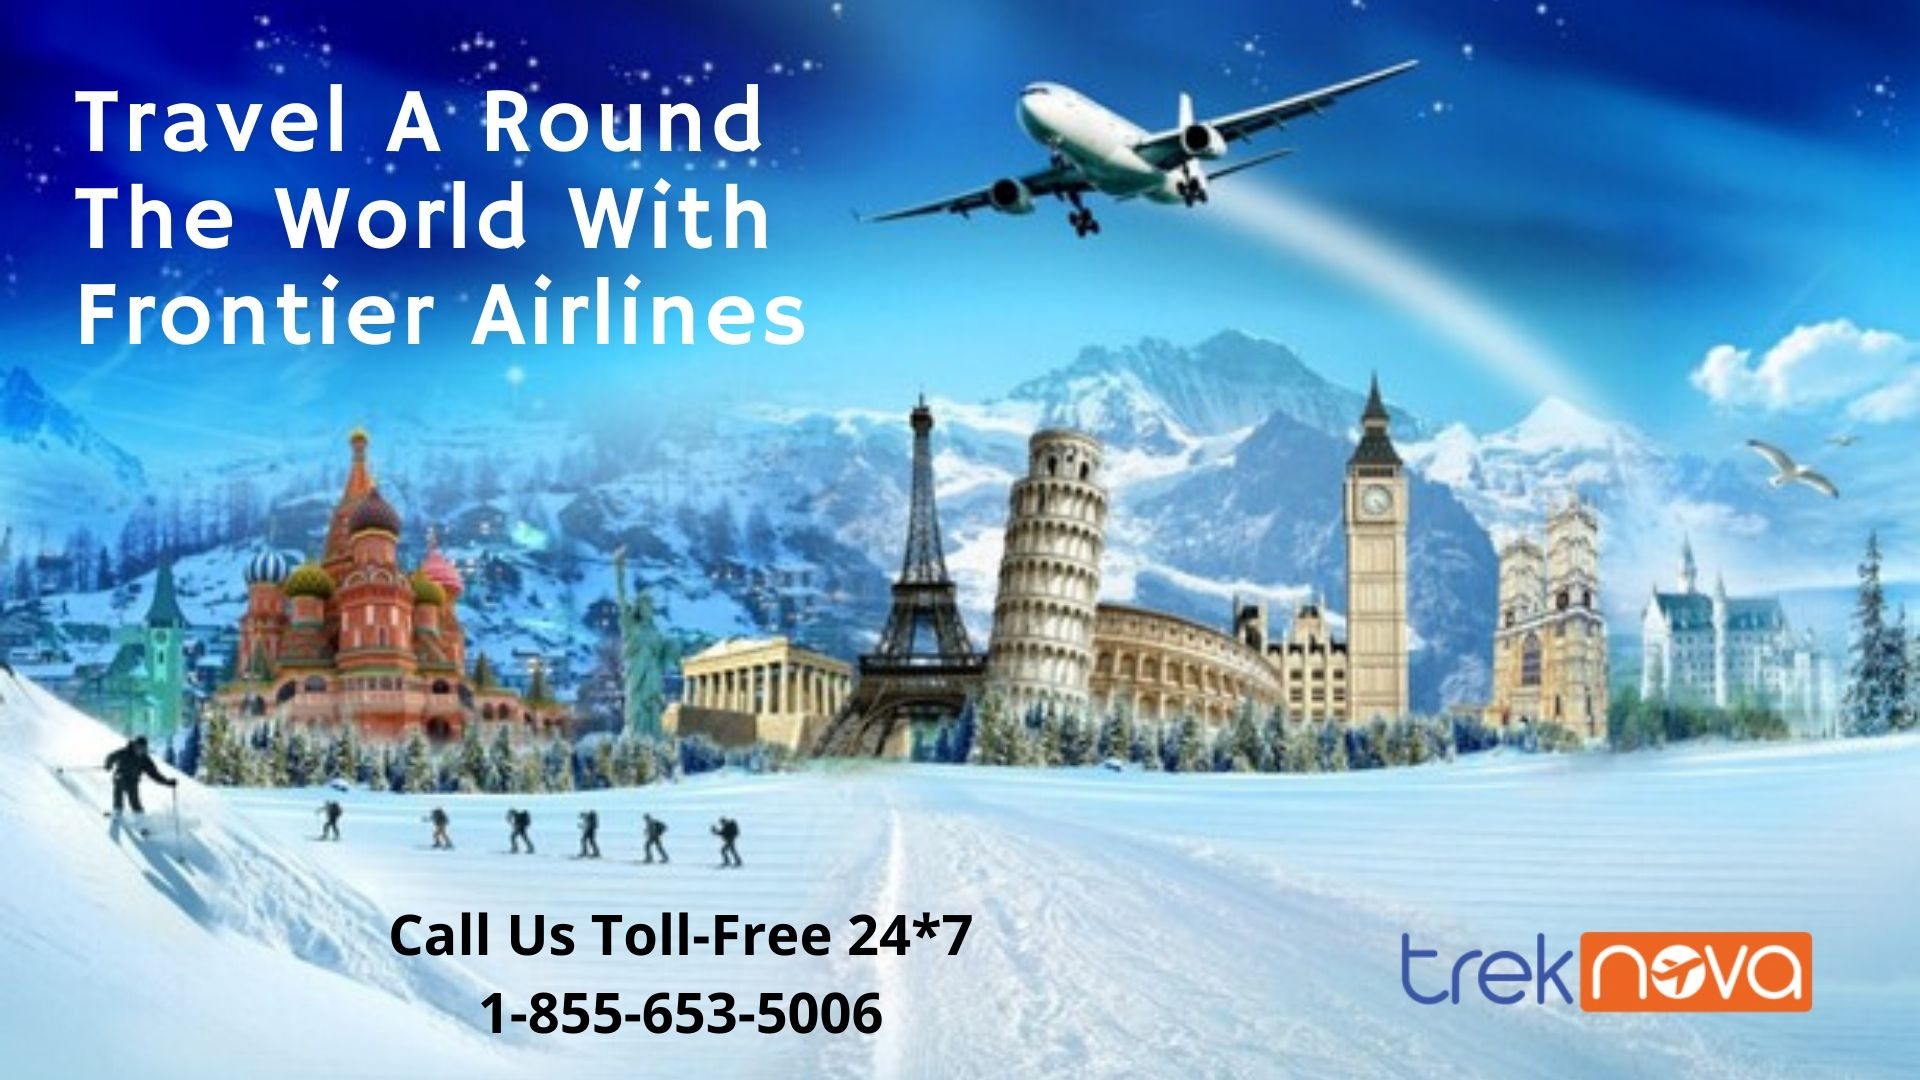 Travel A Round The World